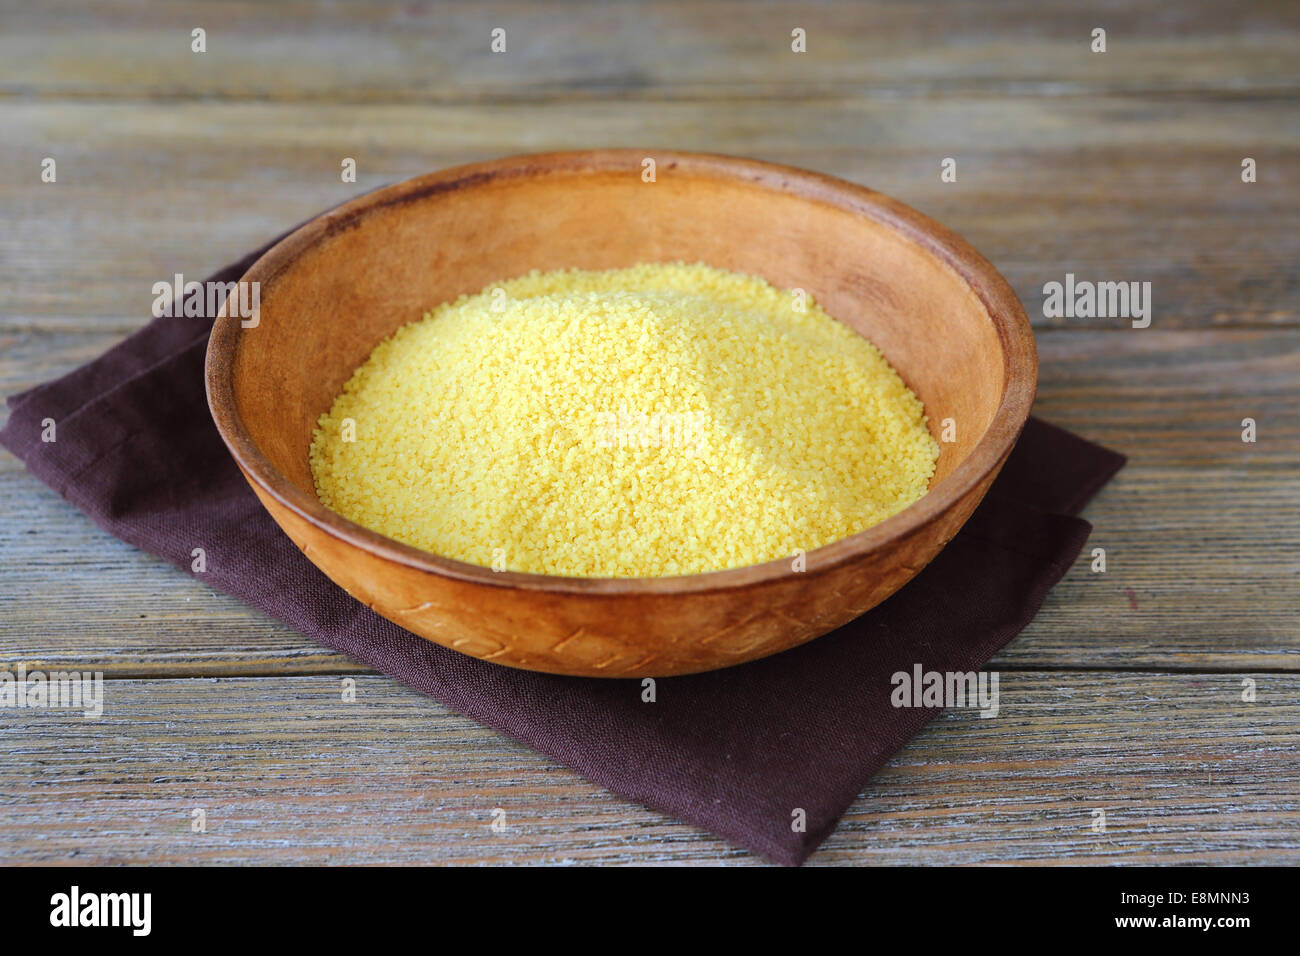 Raw arabic couscous in a clay bowl, arabic food - Stock Image